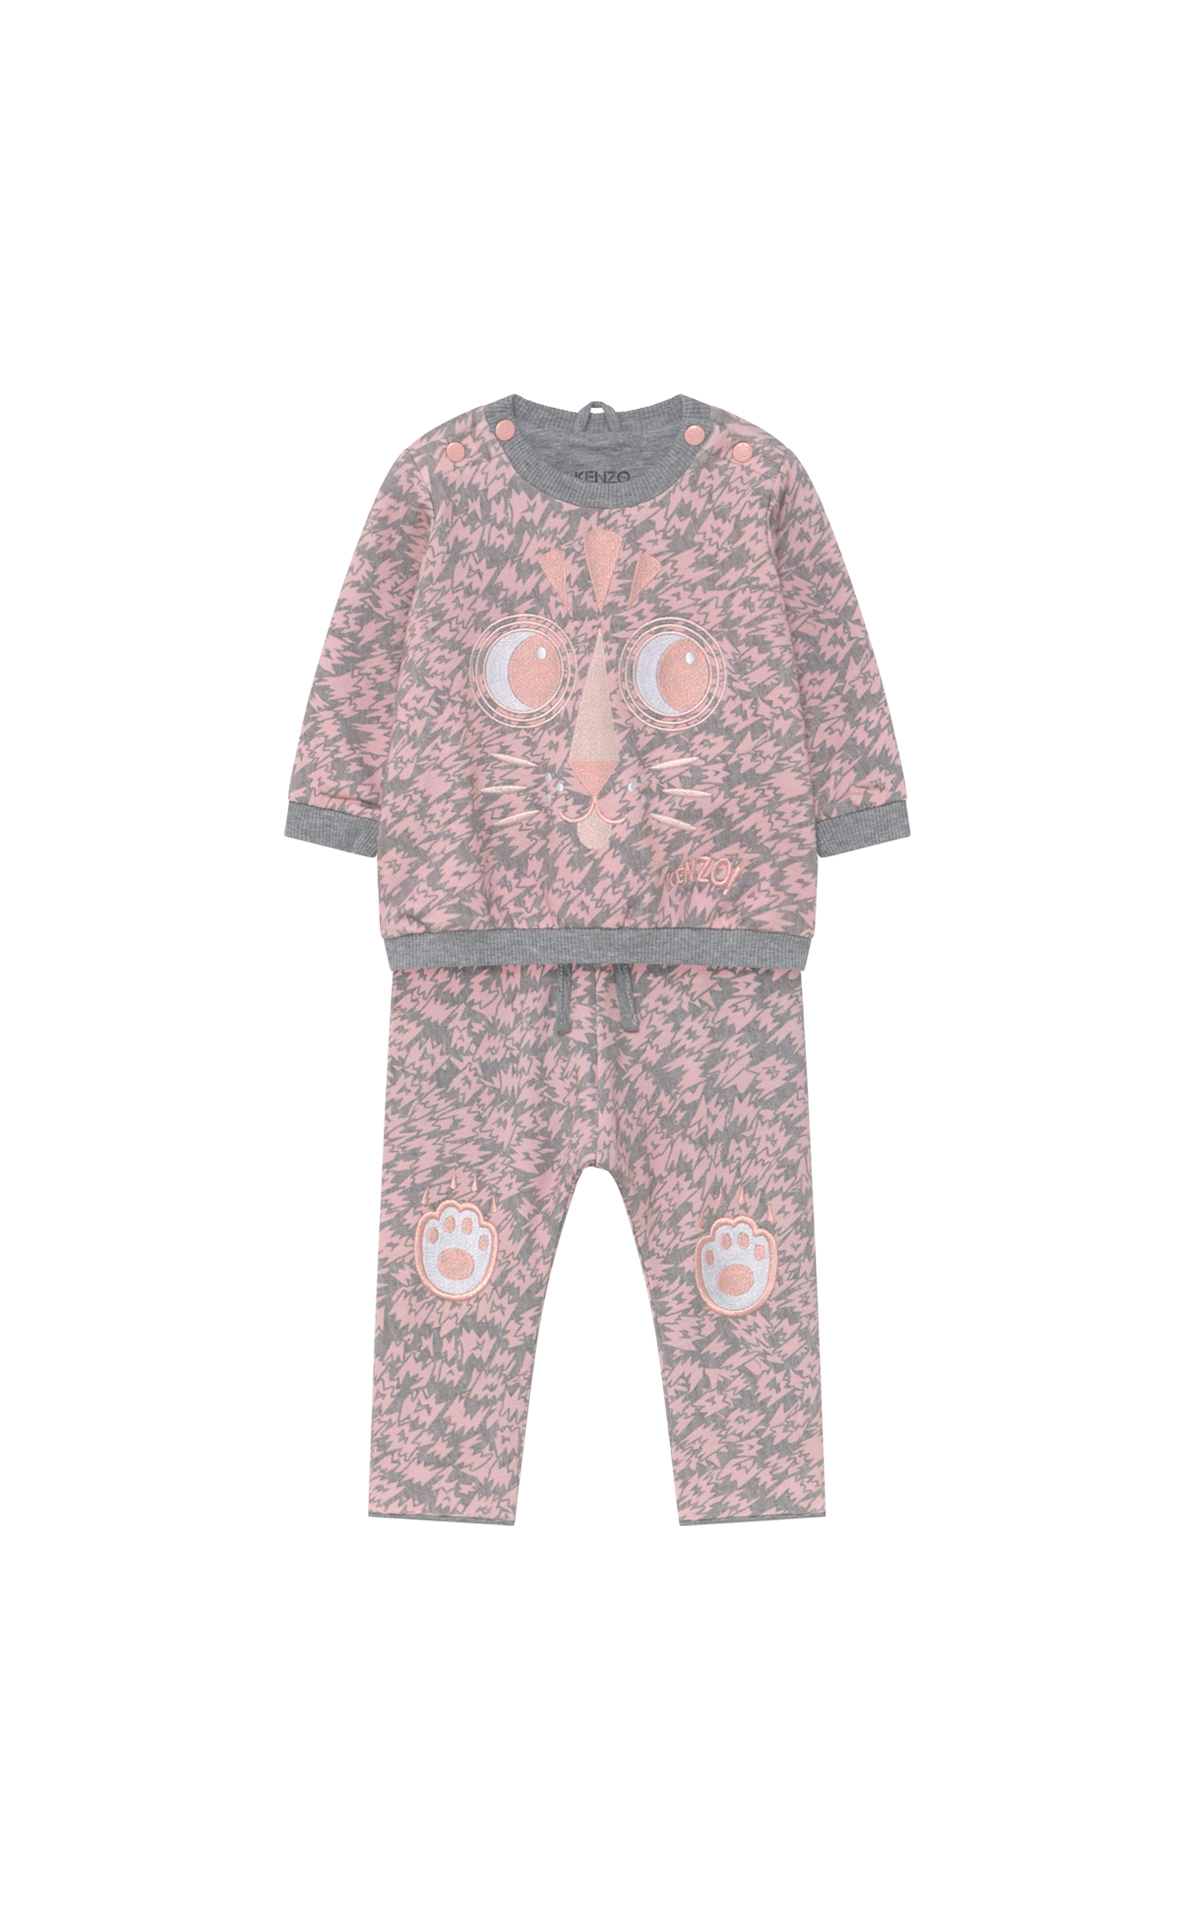 Grey and pink Kenzo baby set Kidiliz